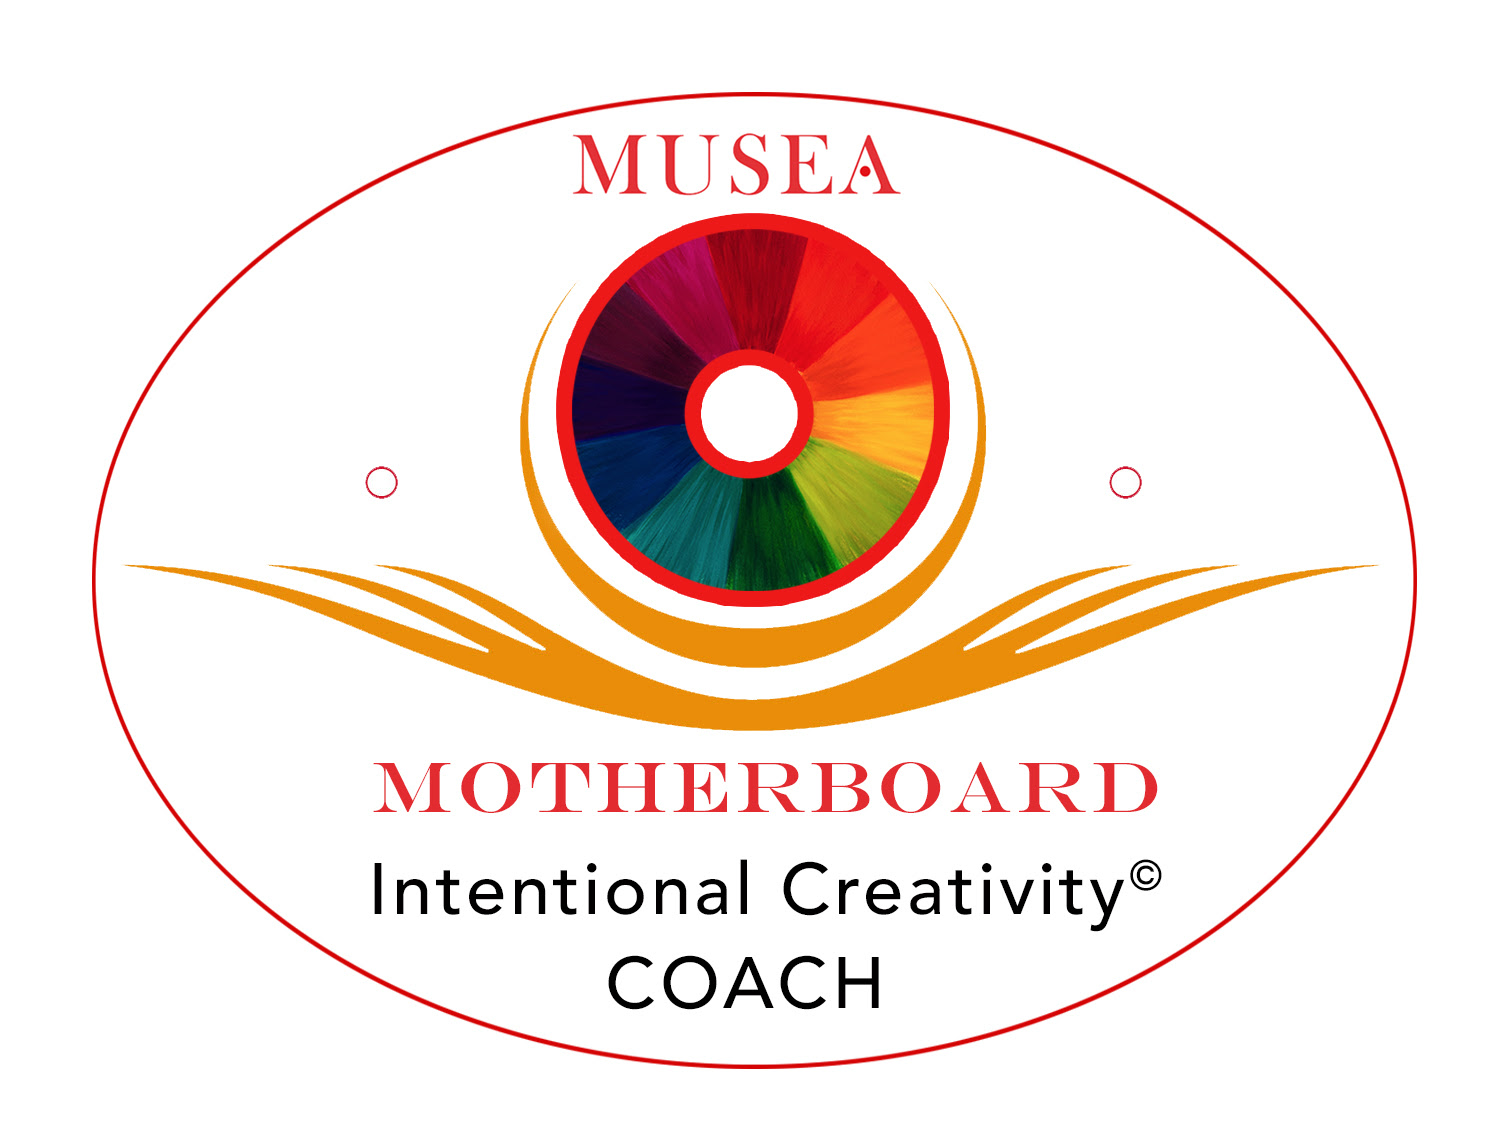 Musea Motherboard Intentional Creativity Coach